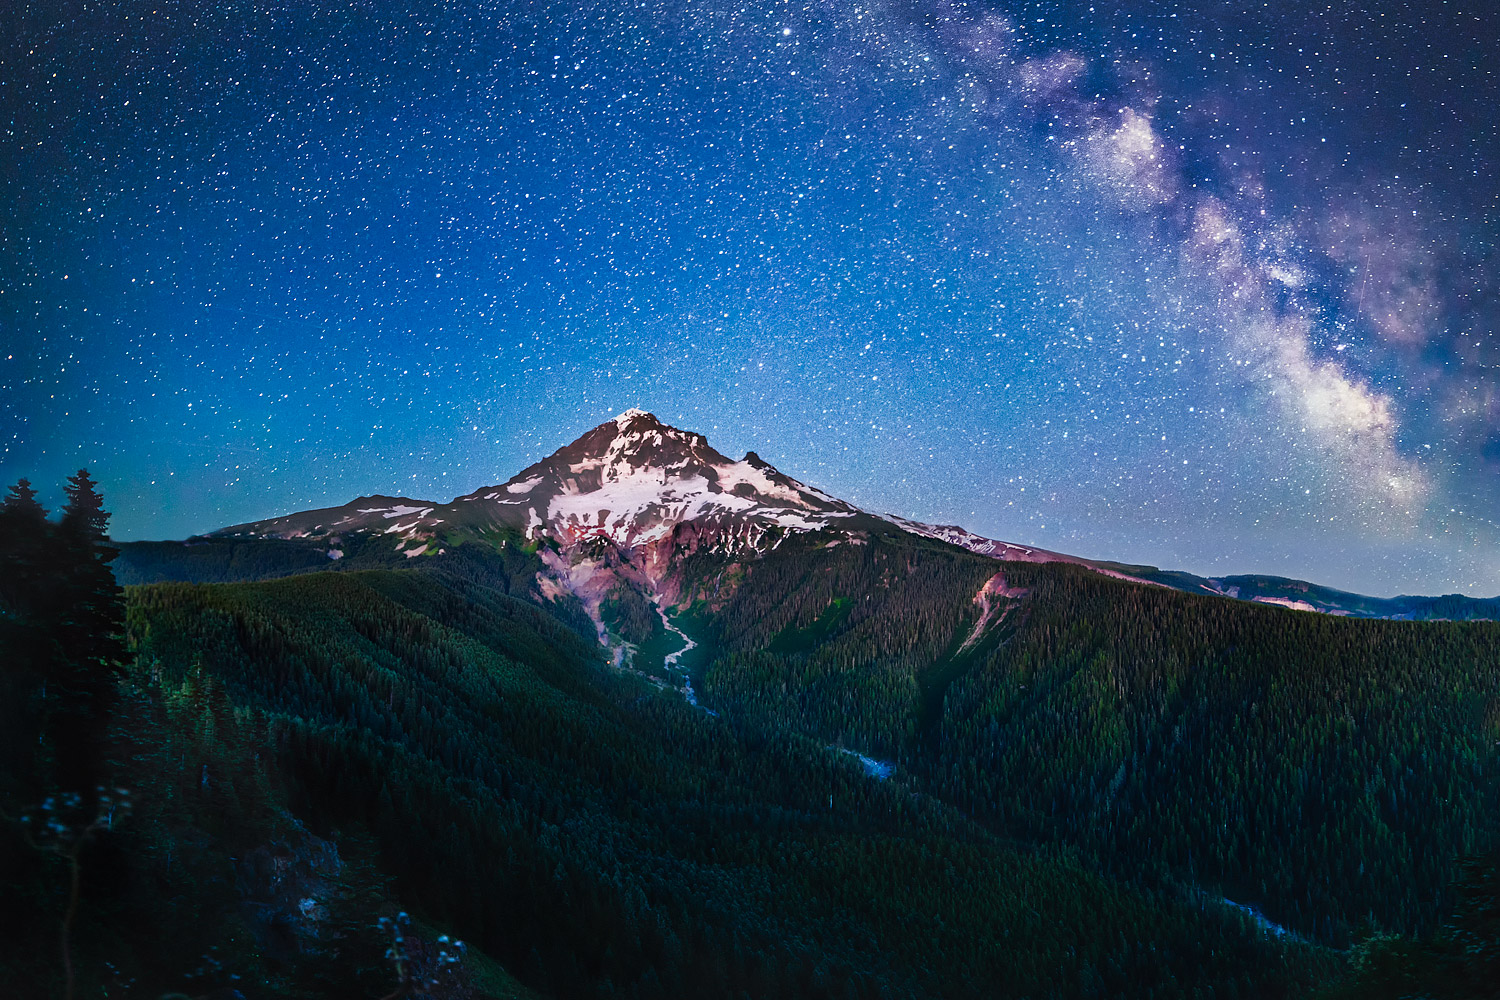 Milky Way above Mt Hood, Oregon from Bald Mountain